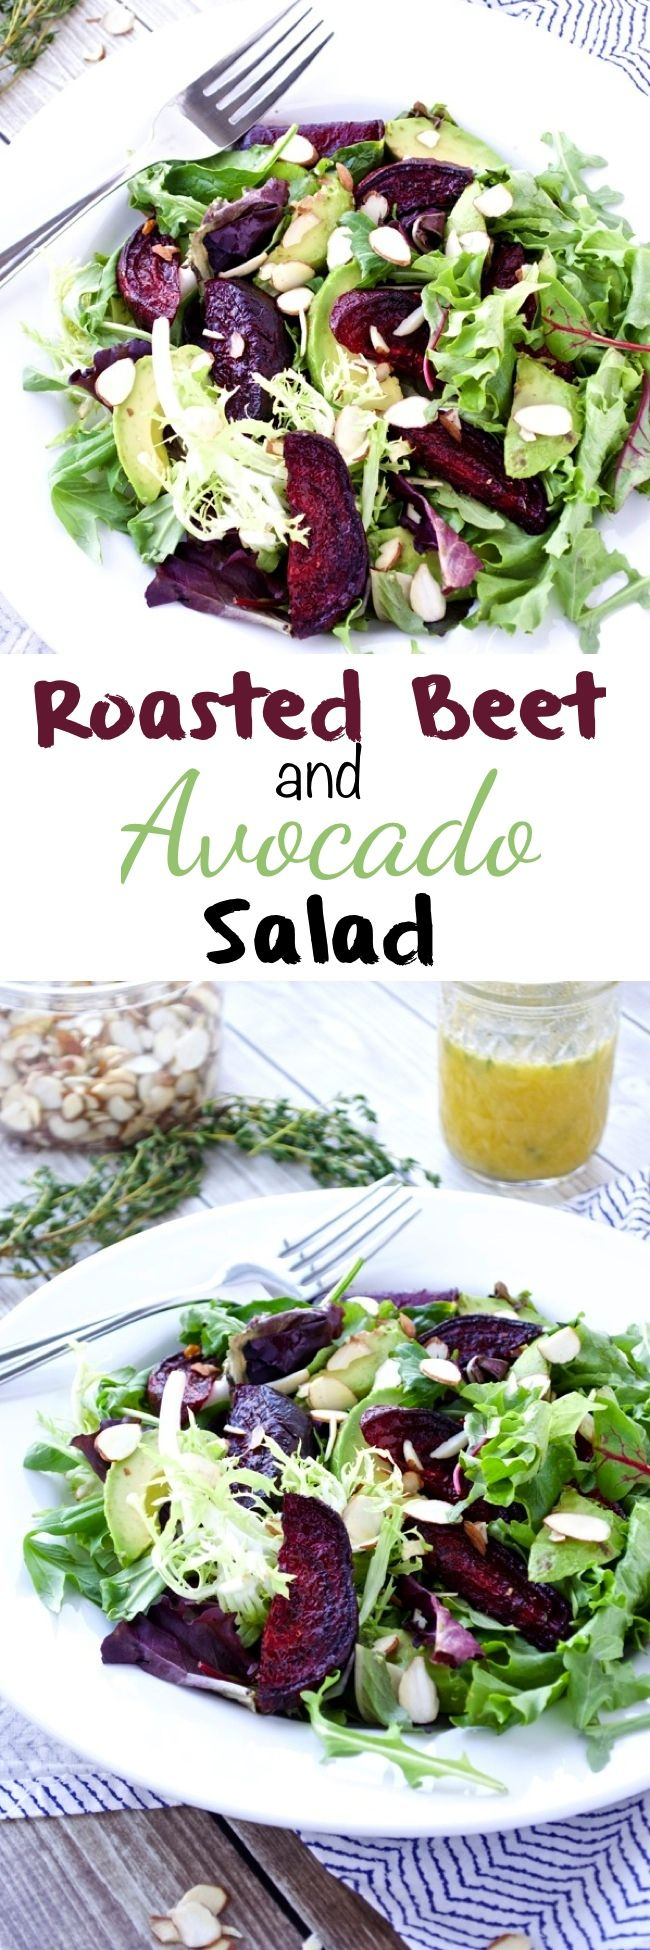 Roasted Beet and Avocado Salad makes a healthy and easy meal! It's gluten-free, dairy-free, vegetarian, and Paleo.